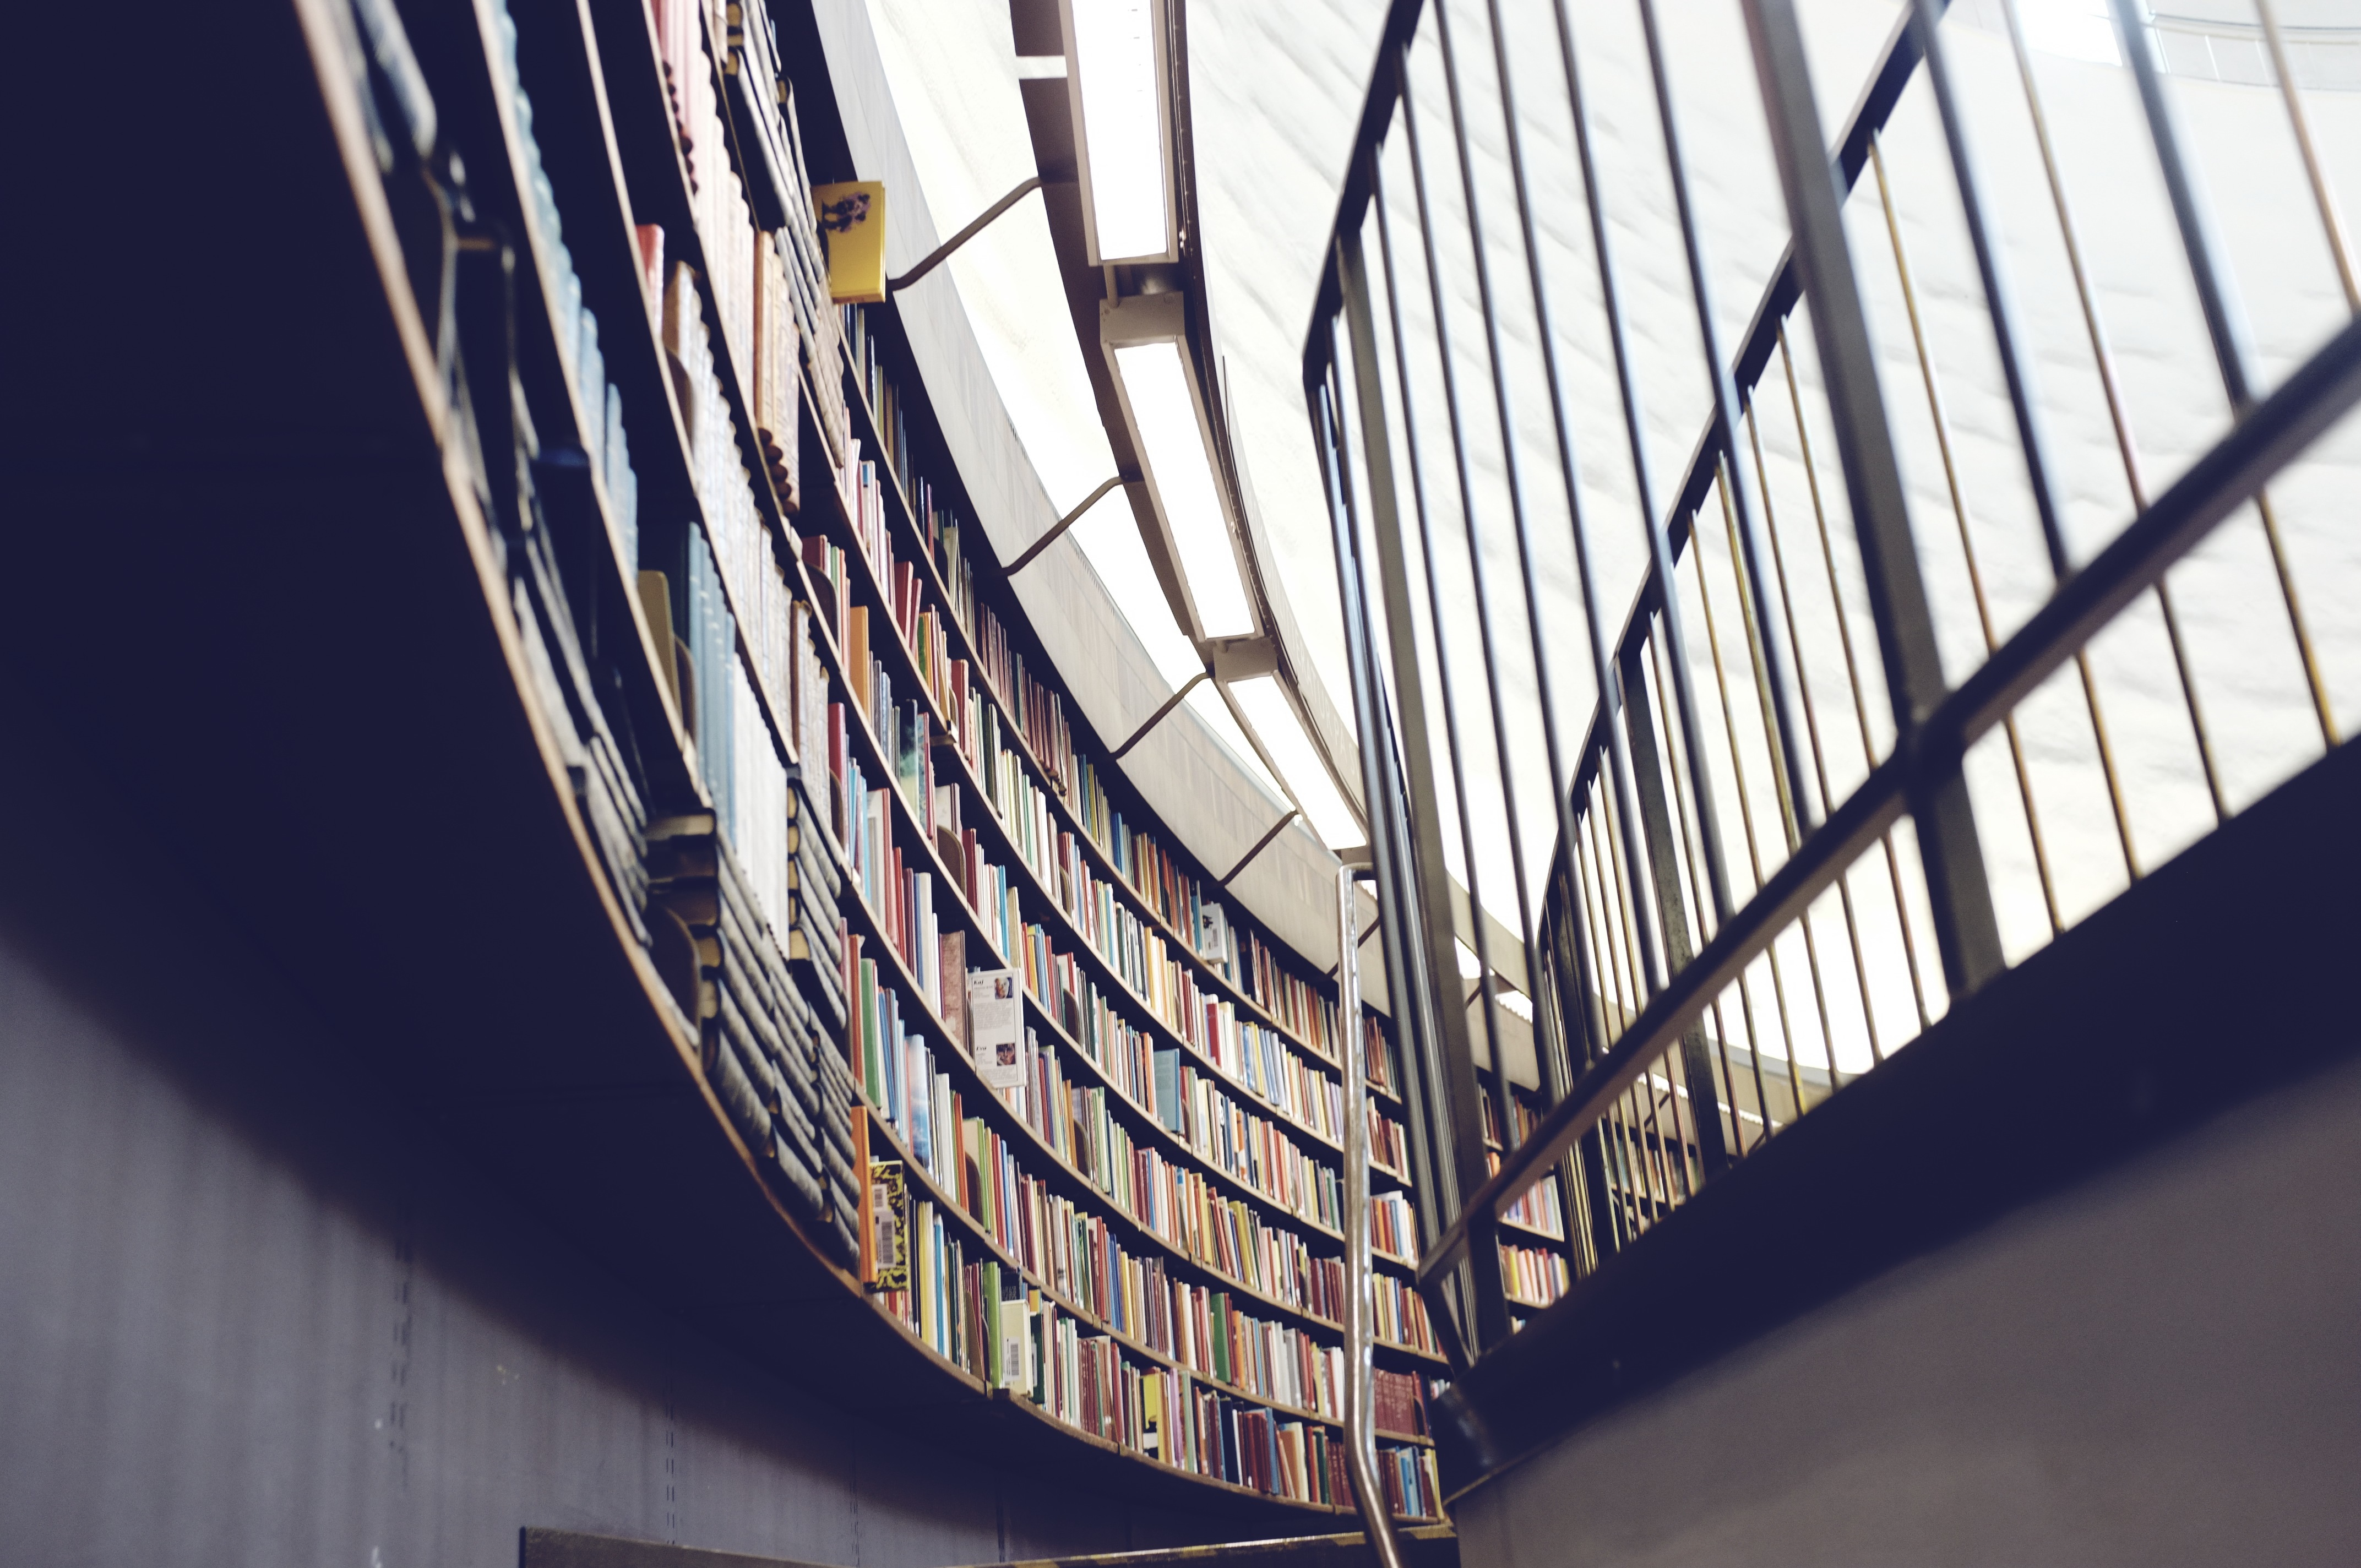 Lots of books on display in a huge, curved shelf in a modernist library